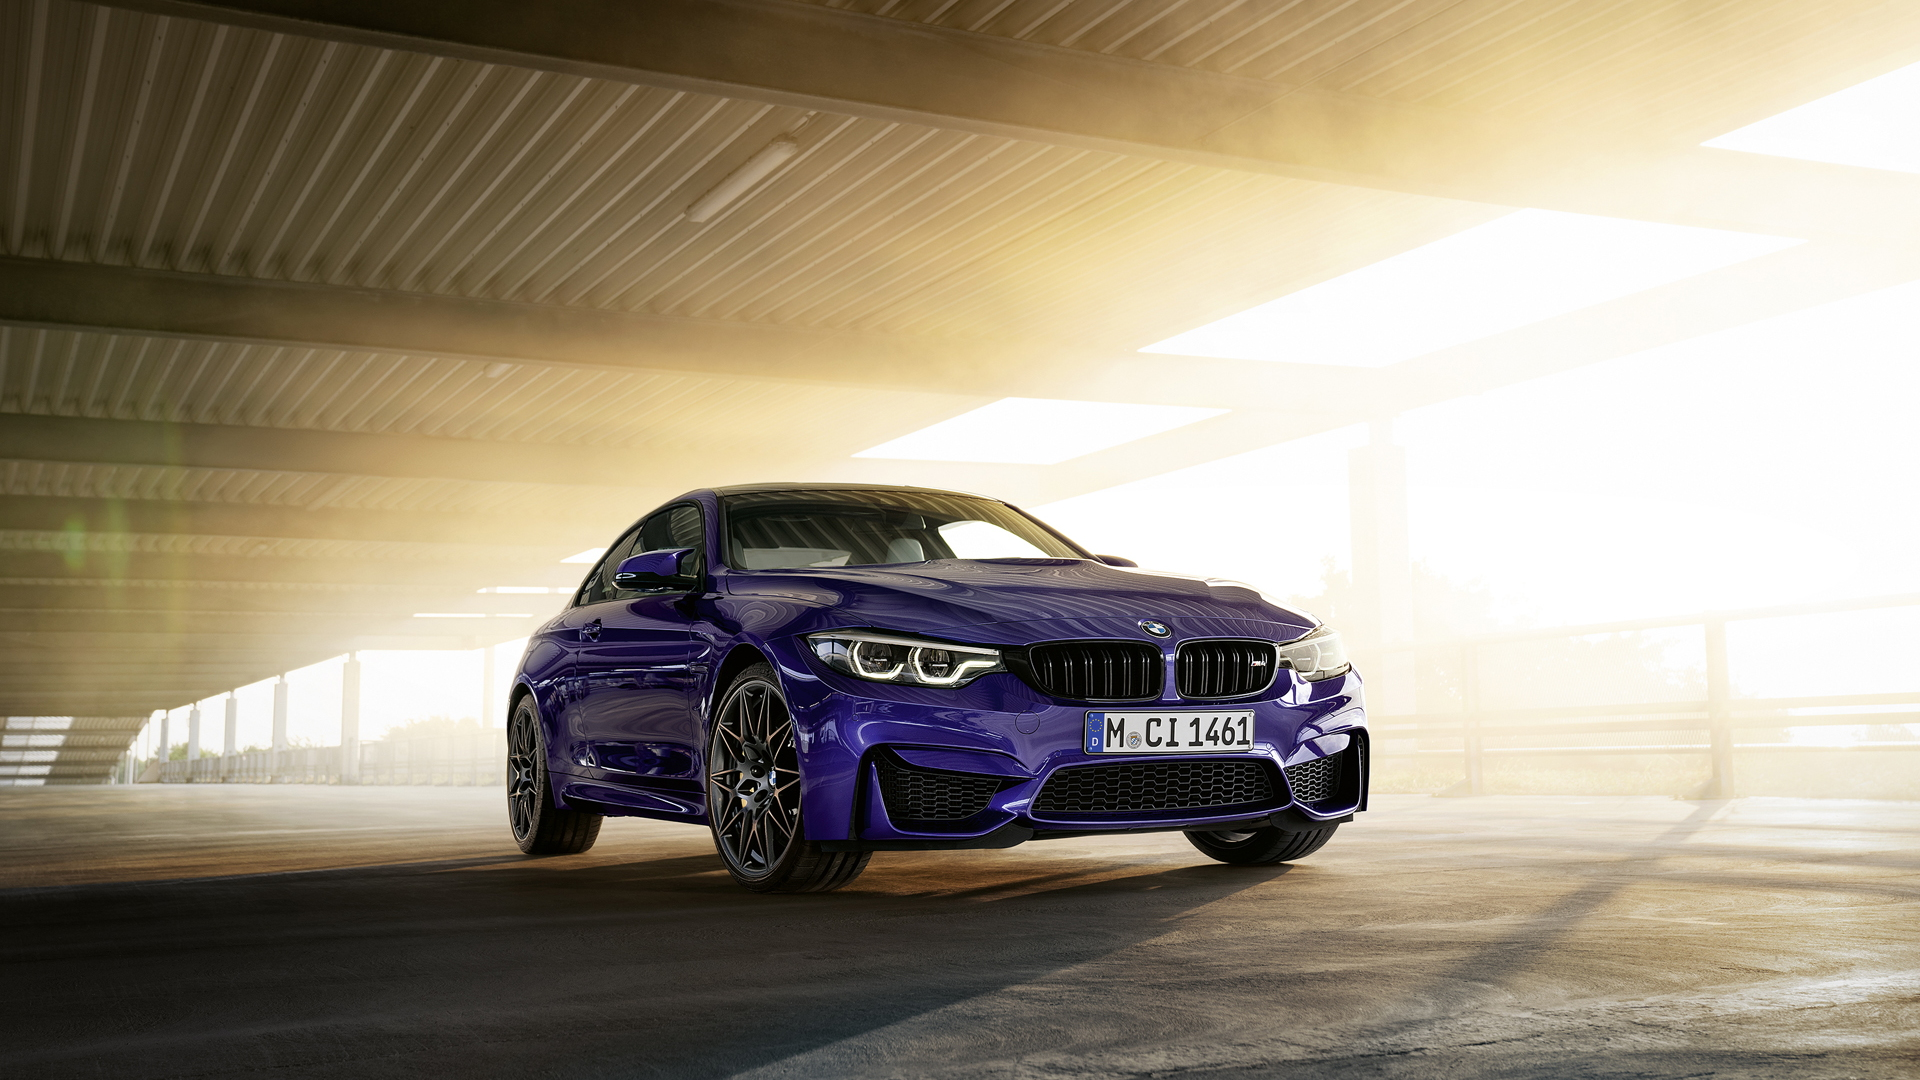 2020 BMW M4 Edition ///M Heritage